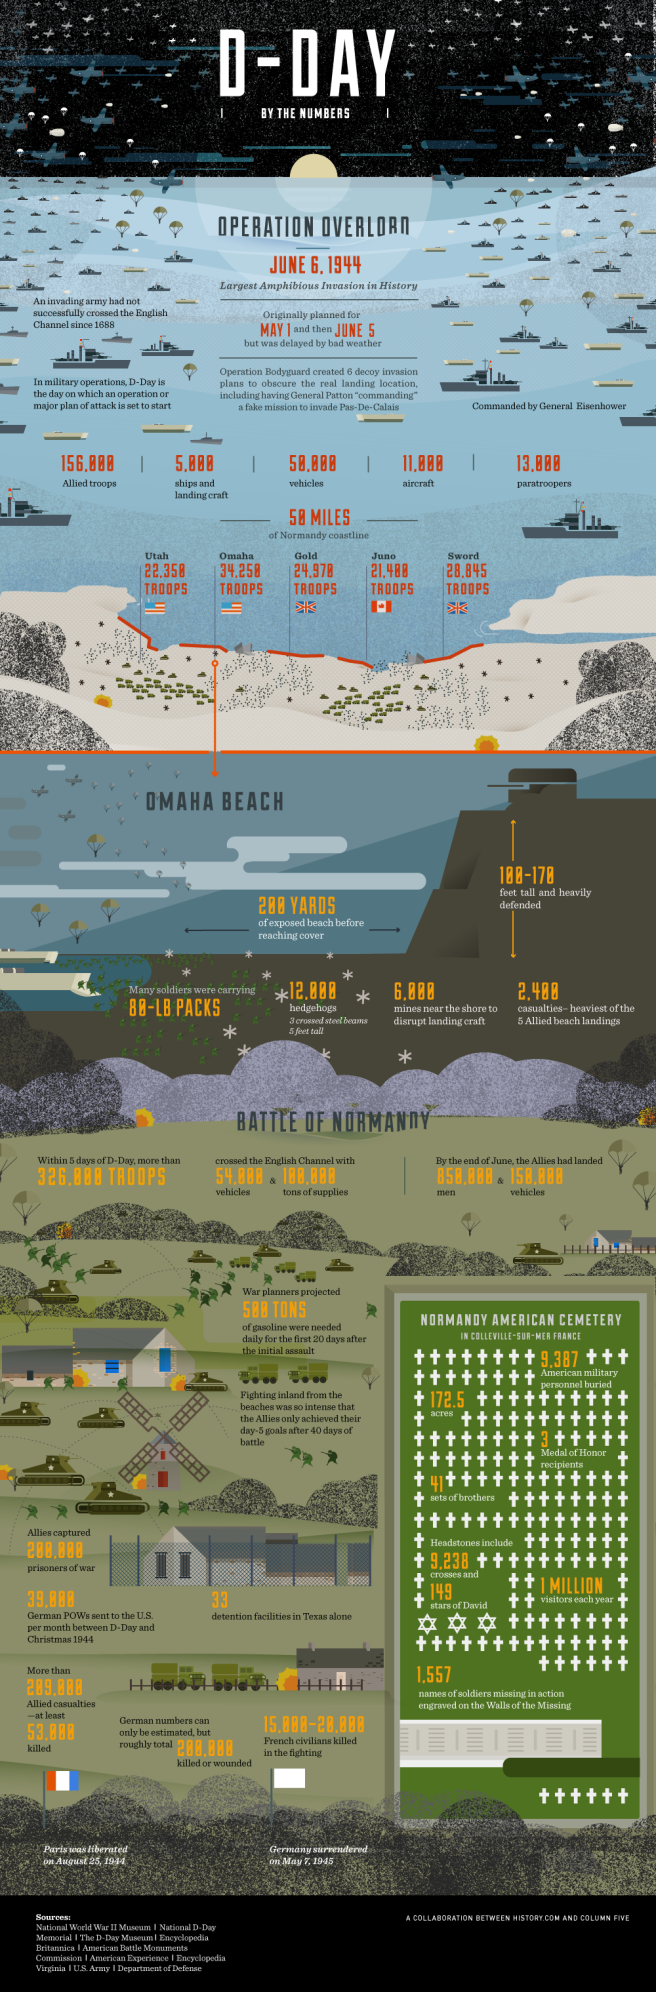 D-Day-infographic-revised-6-3